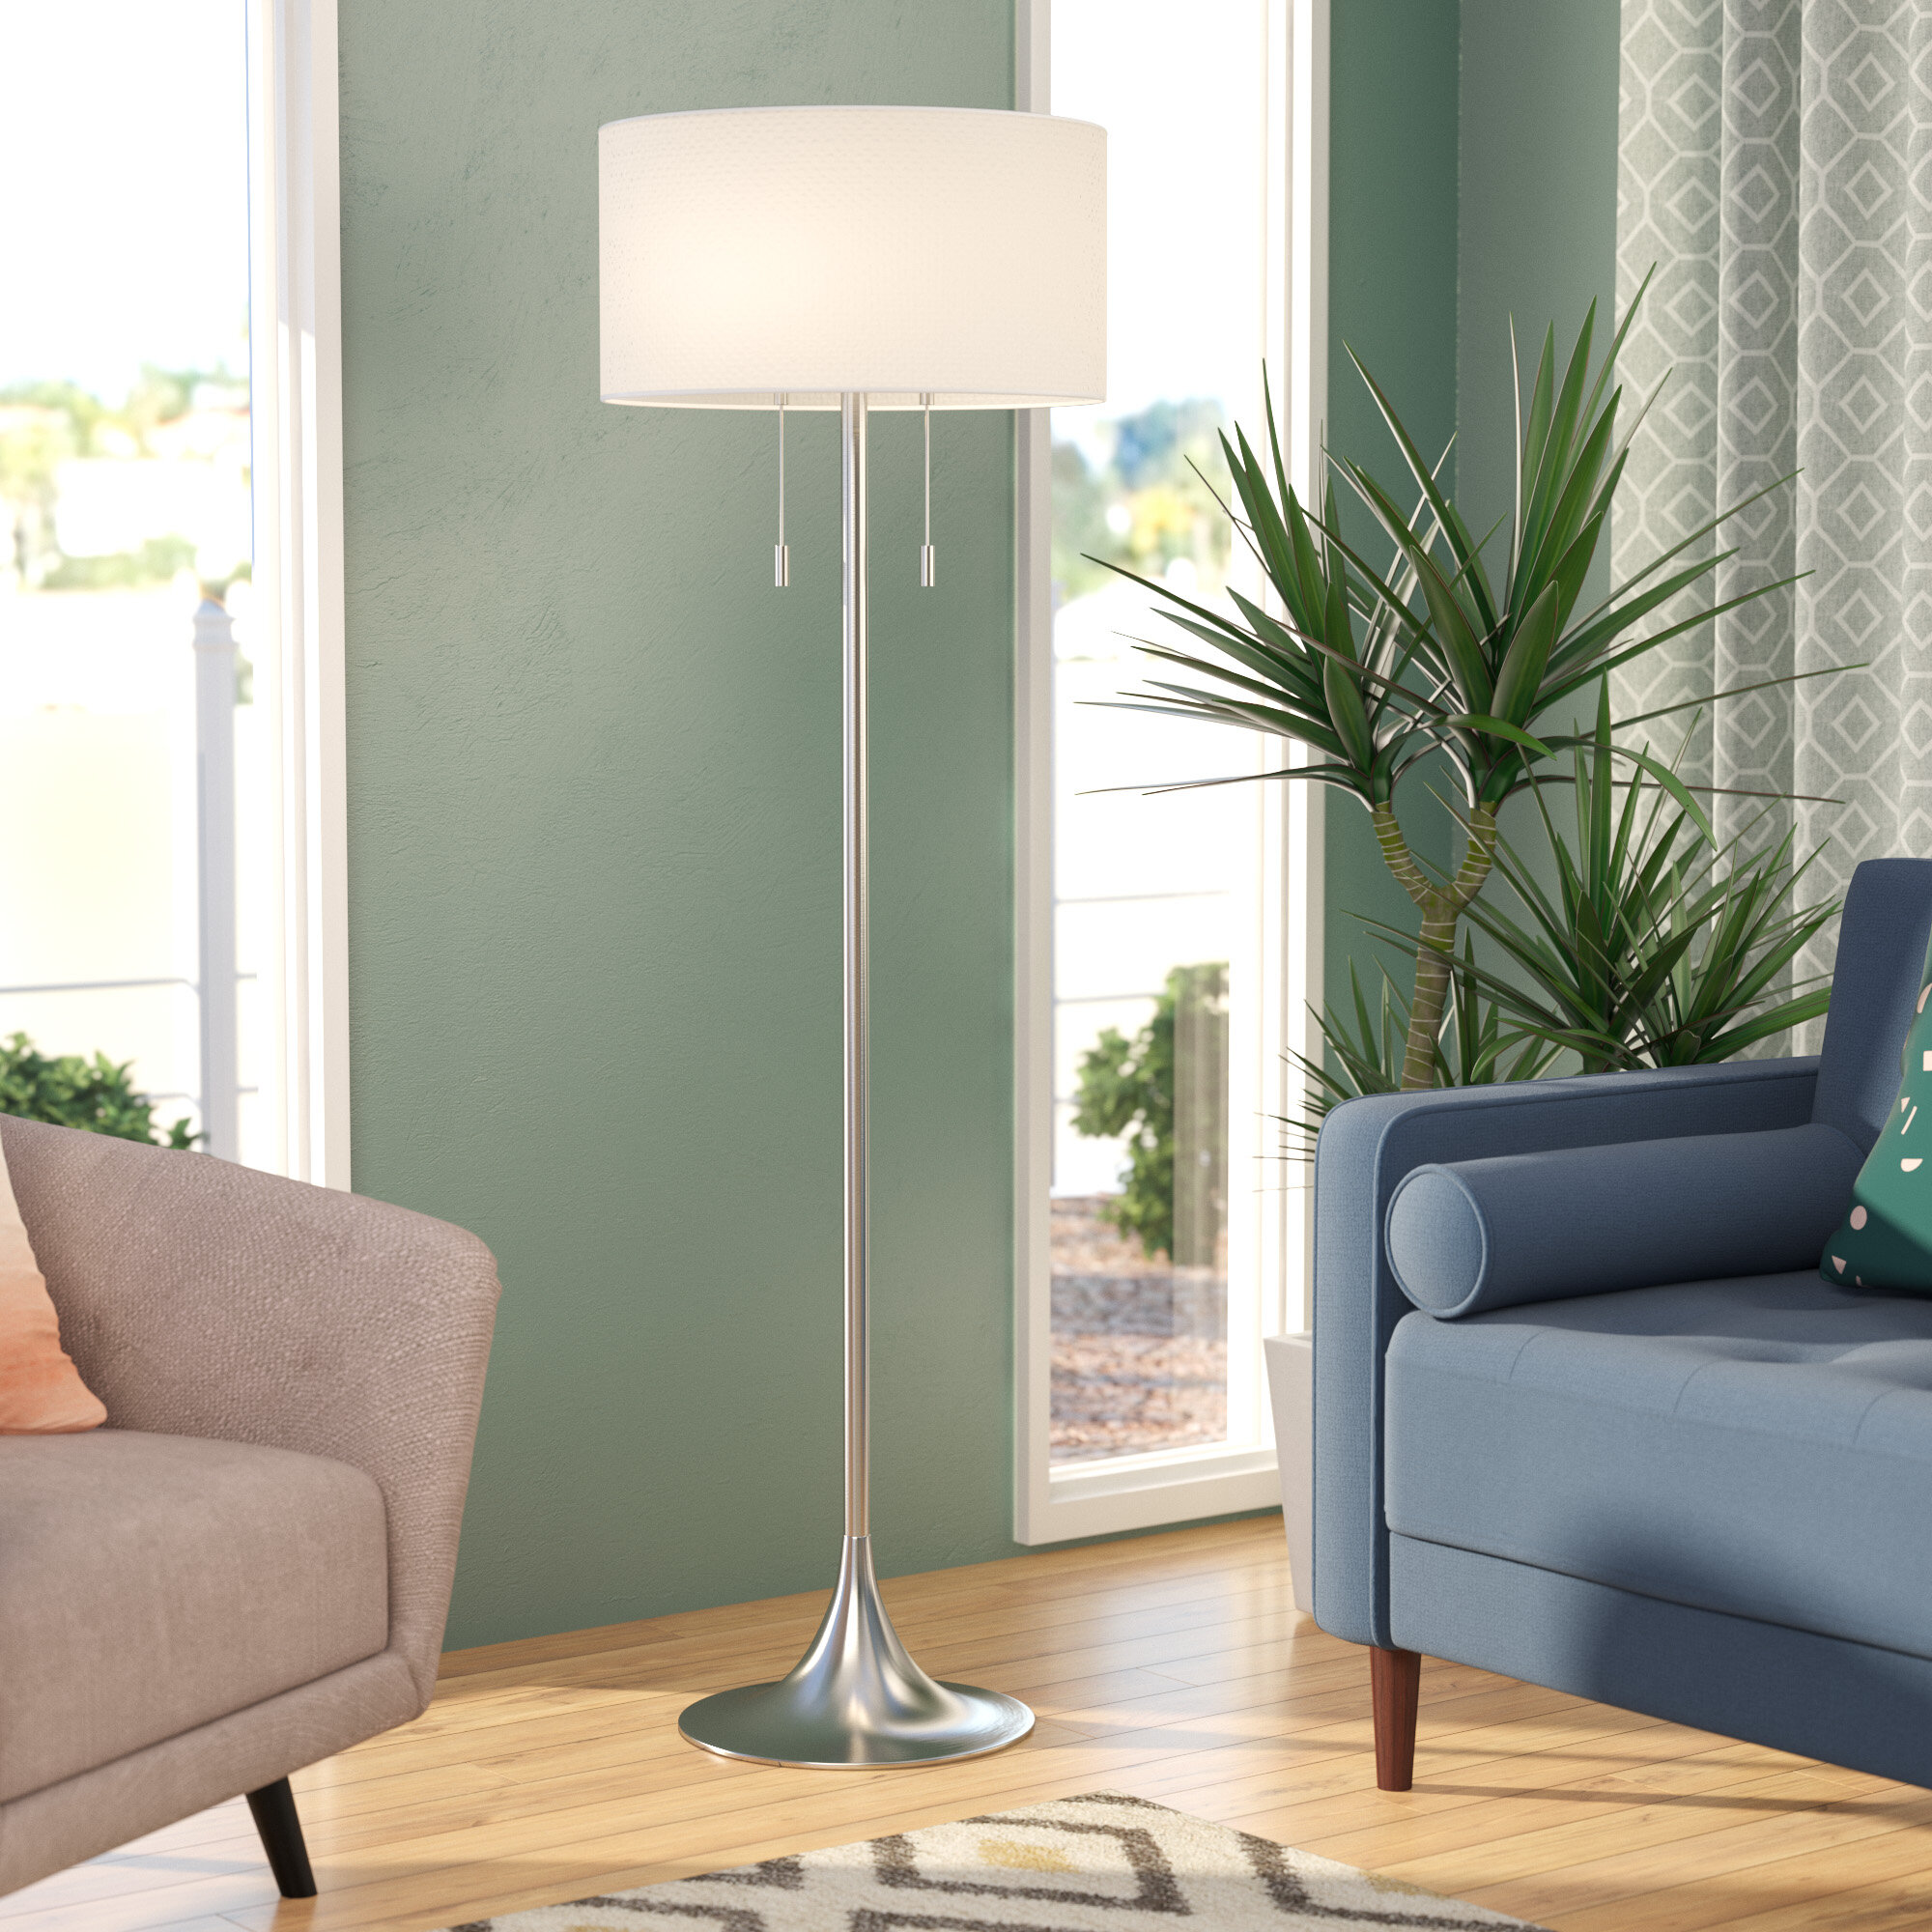 Bright Light Floor Lamp | Wayfair